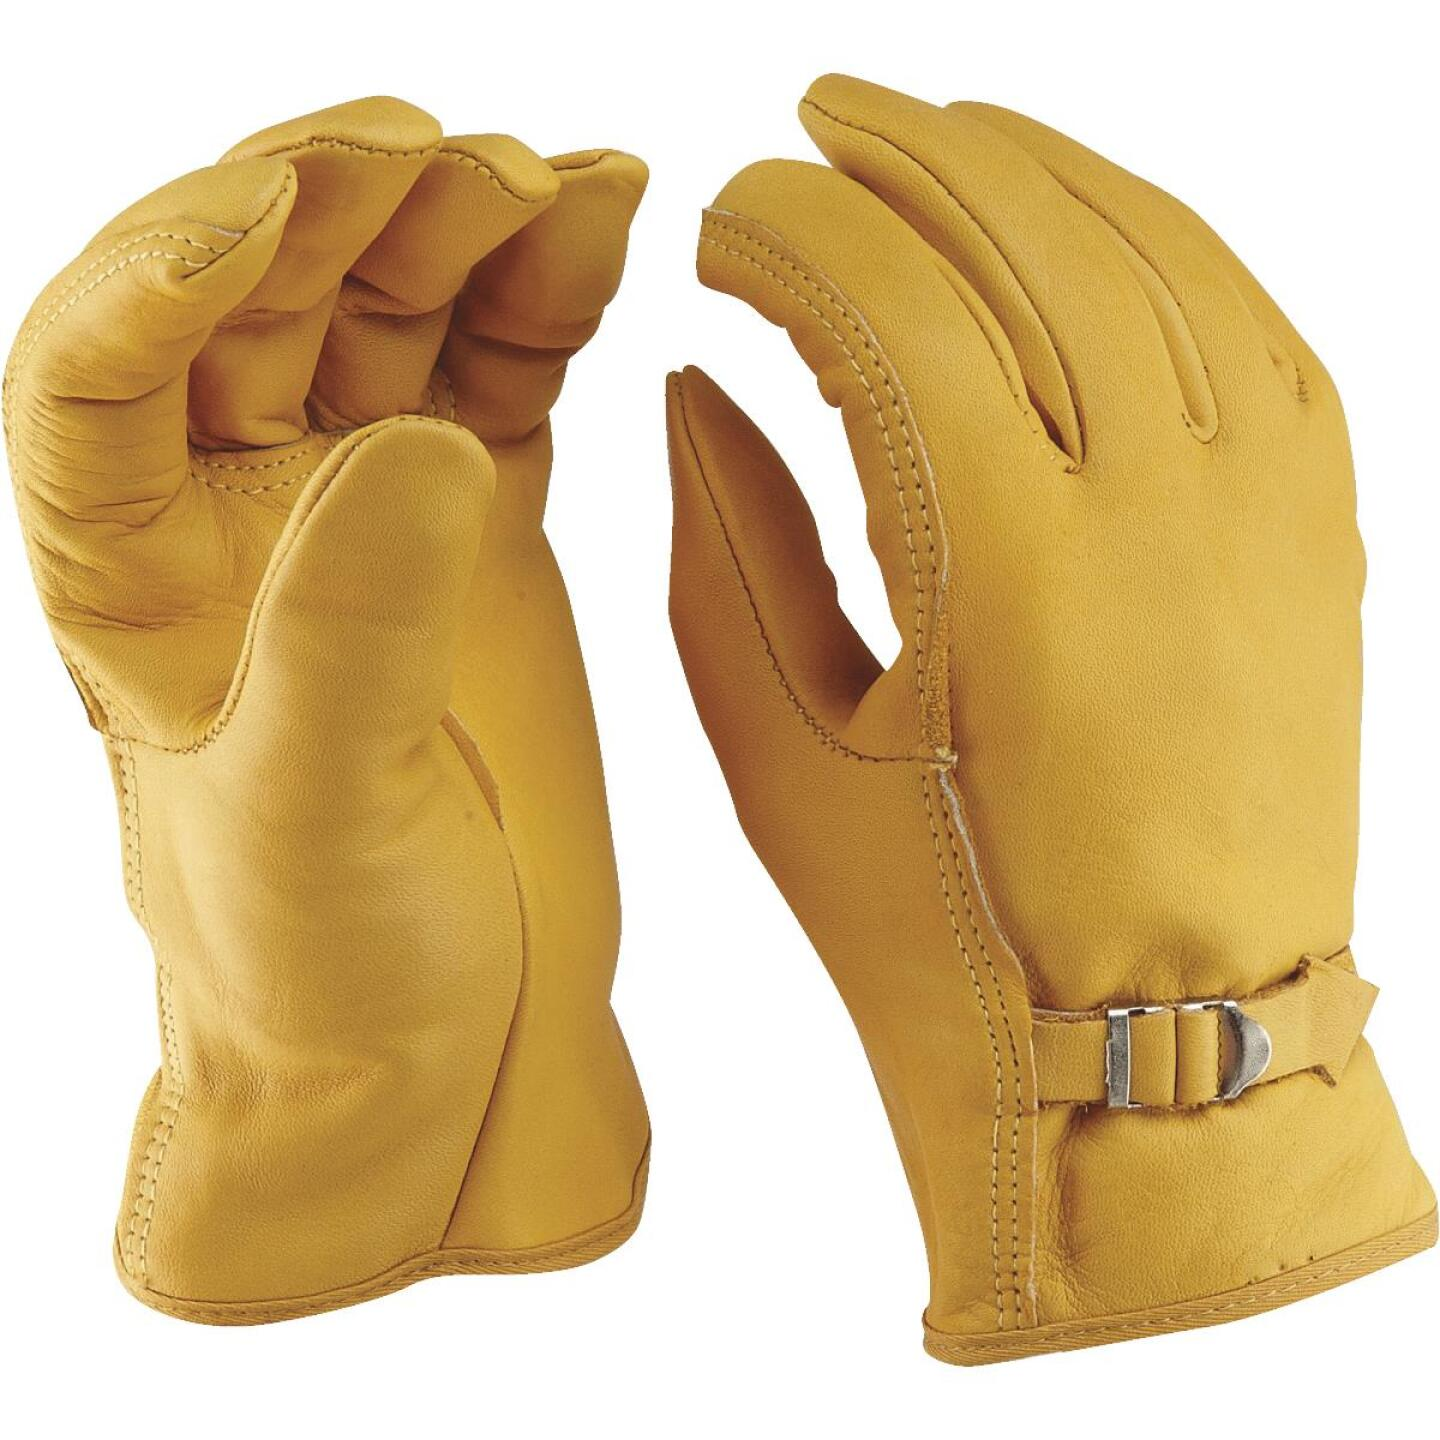 Do it Best Men's Large Leather Driver Glove Image 3